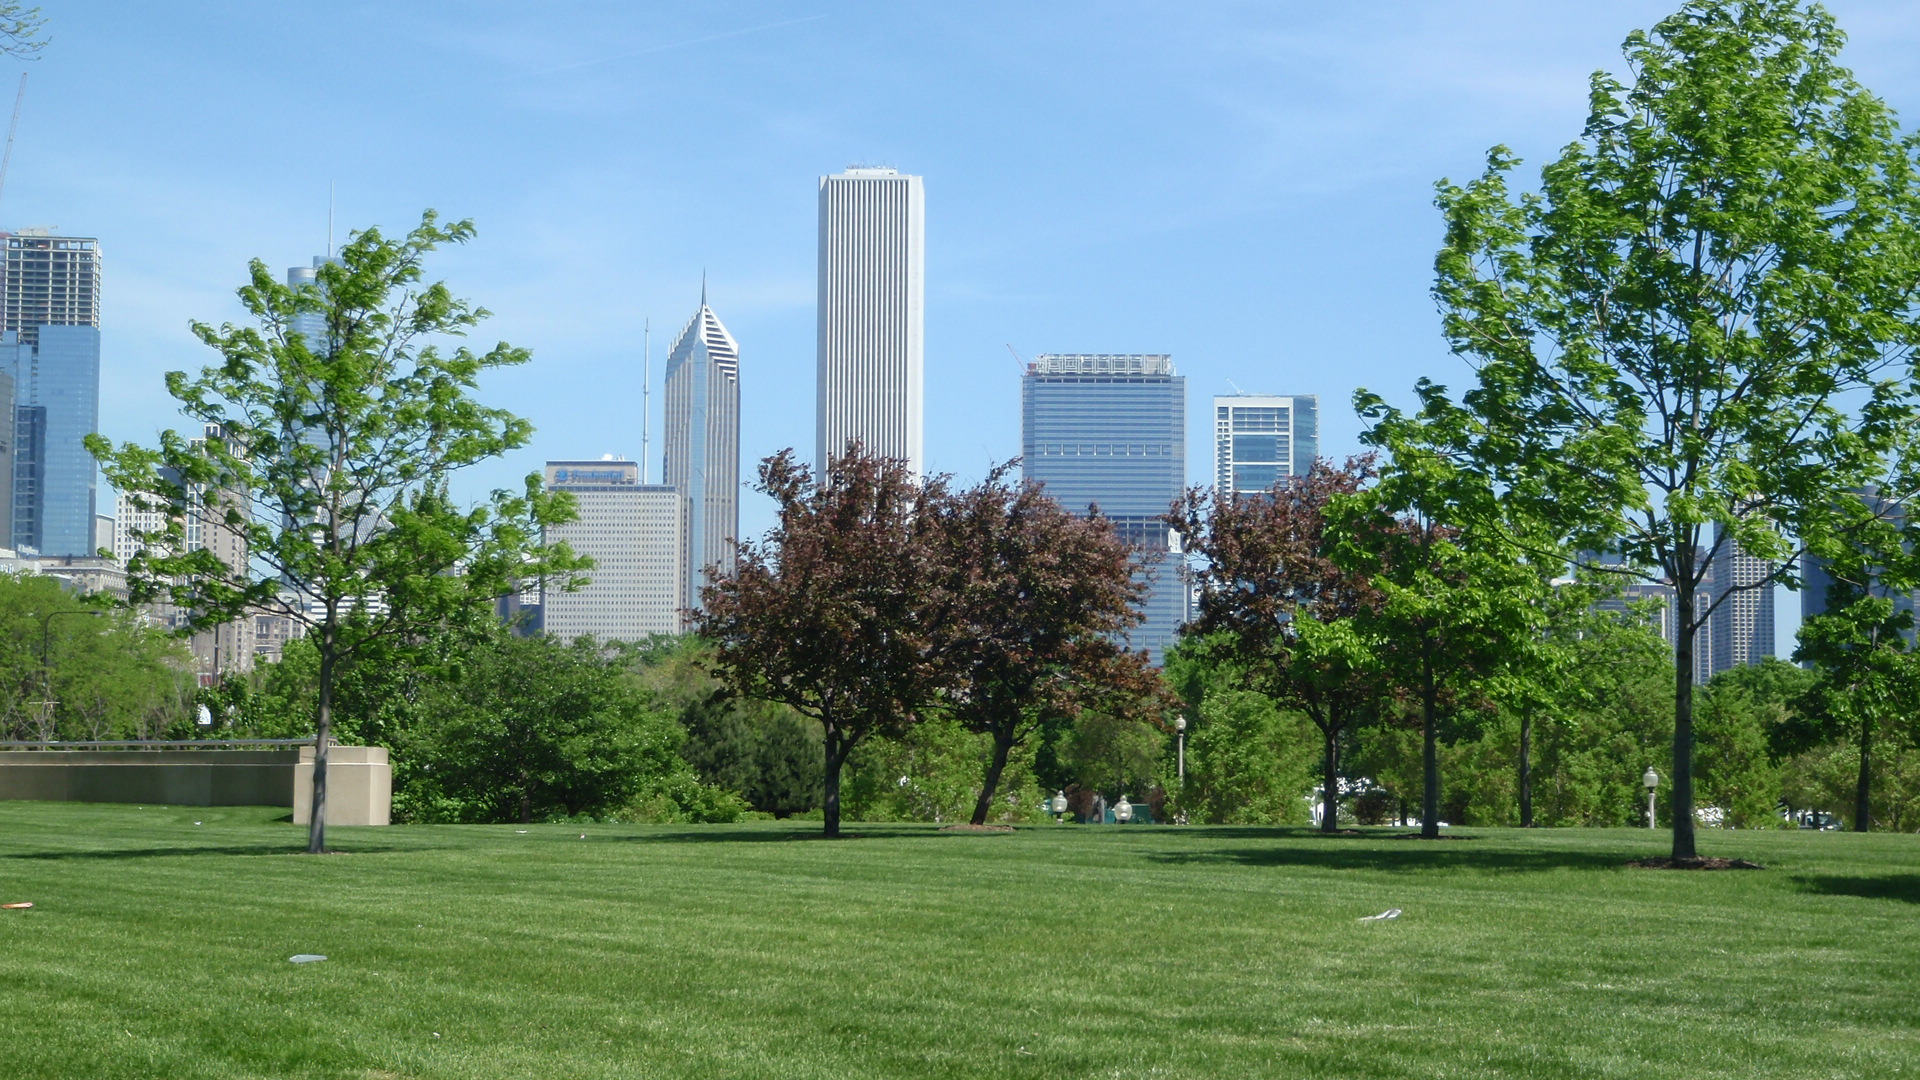 FileChicago City Views Summer 2009 Raed Elaydi 20JPG